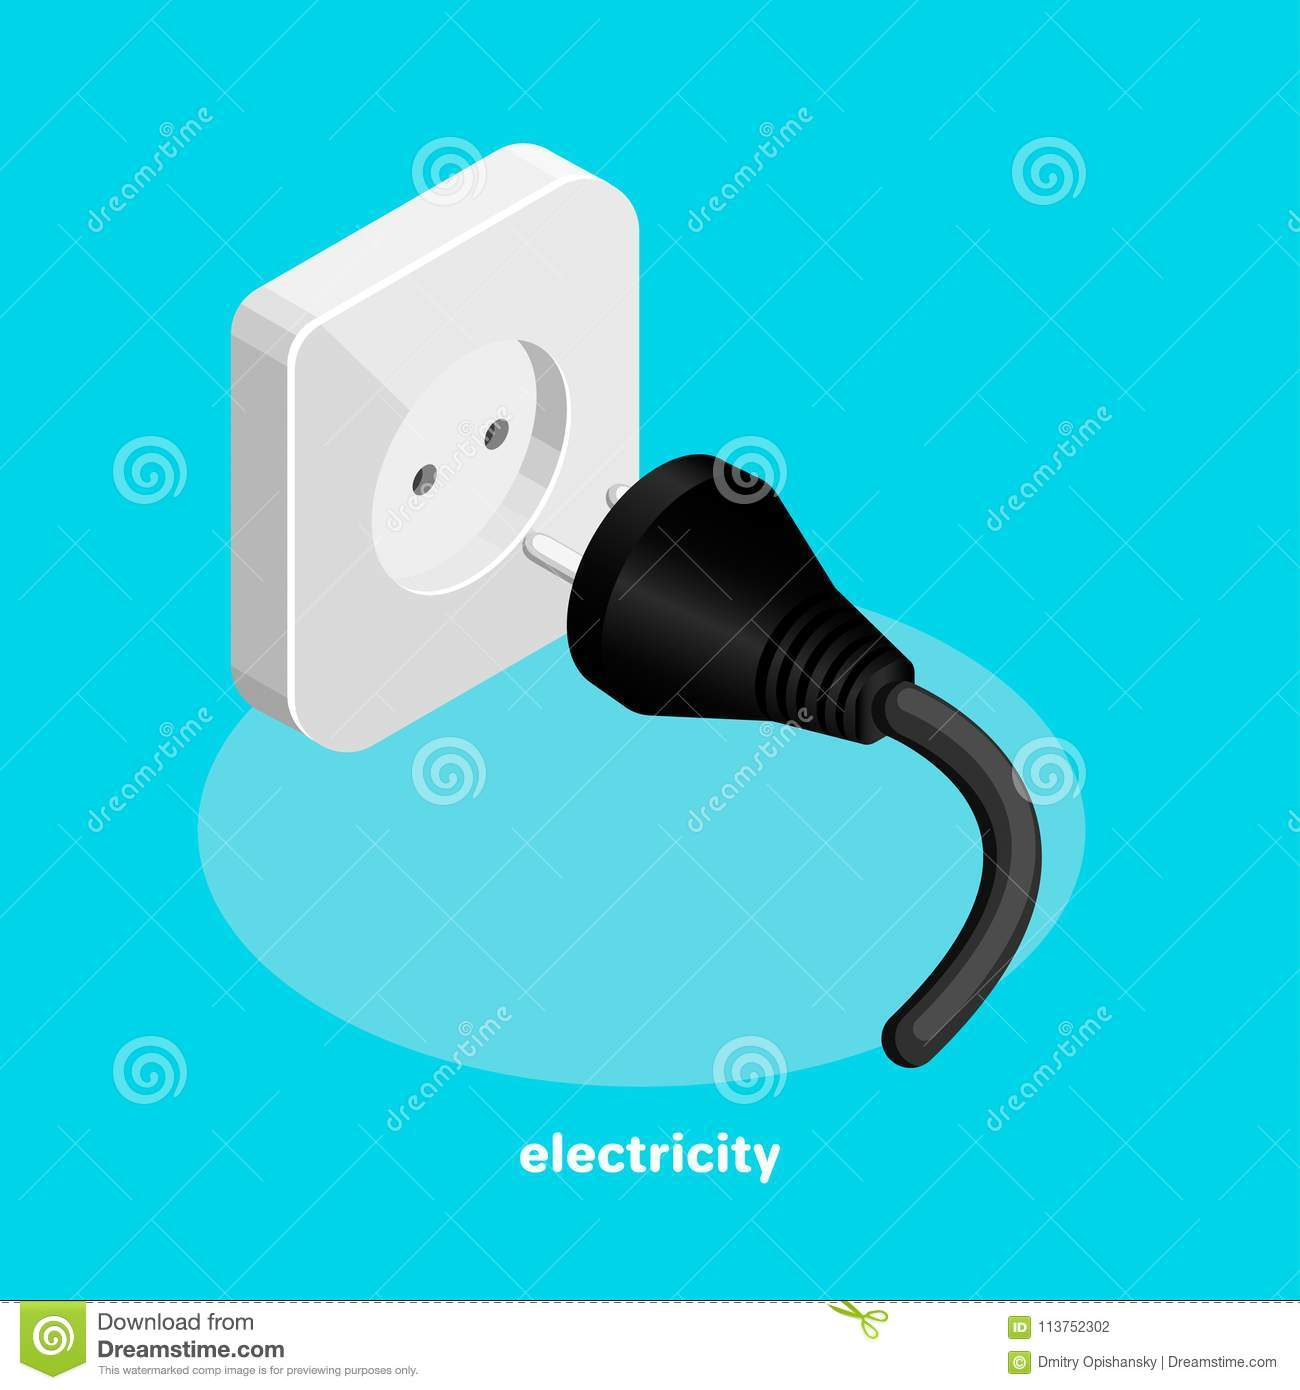 Electric Socket And Plug With Wire Stock Vector - Illustration of ...